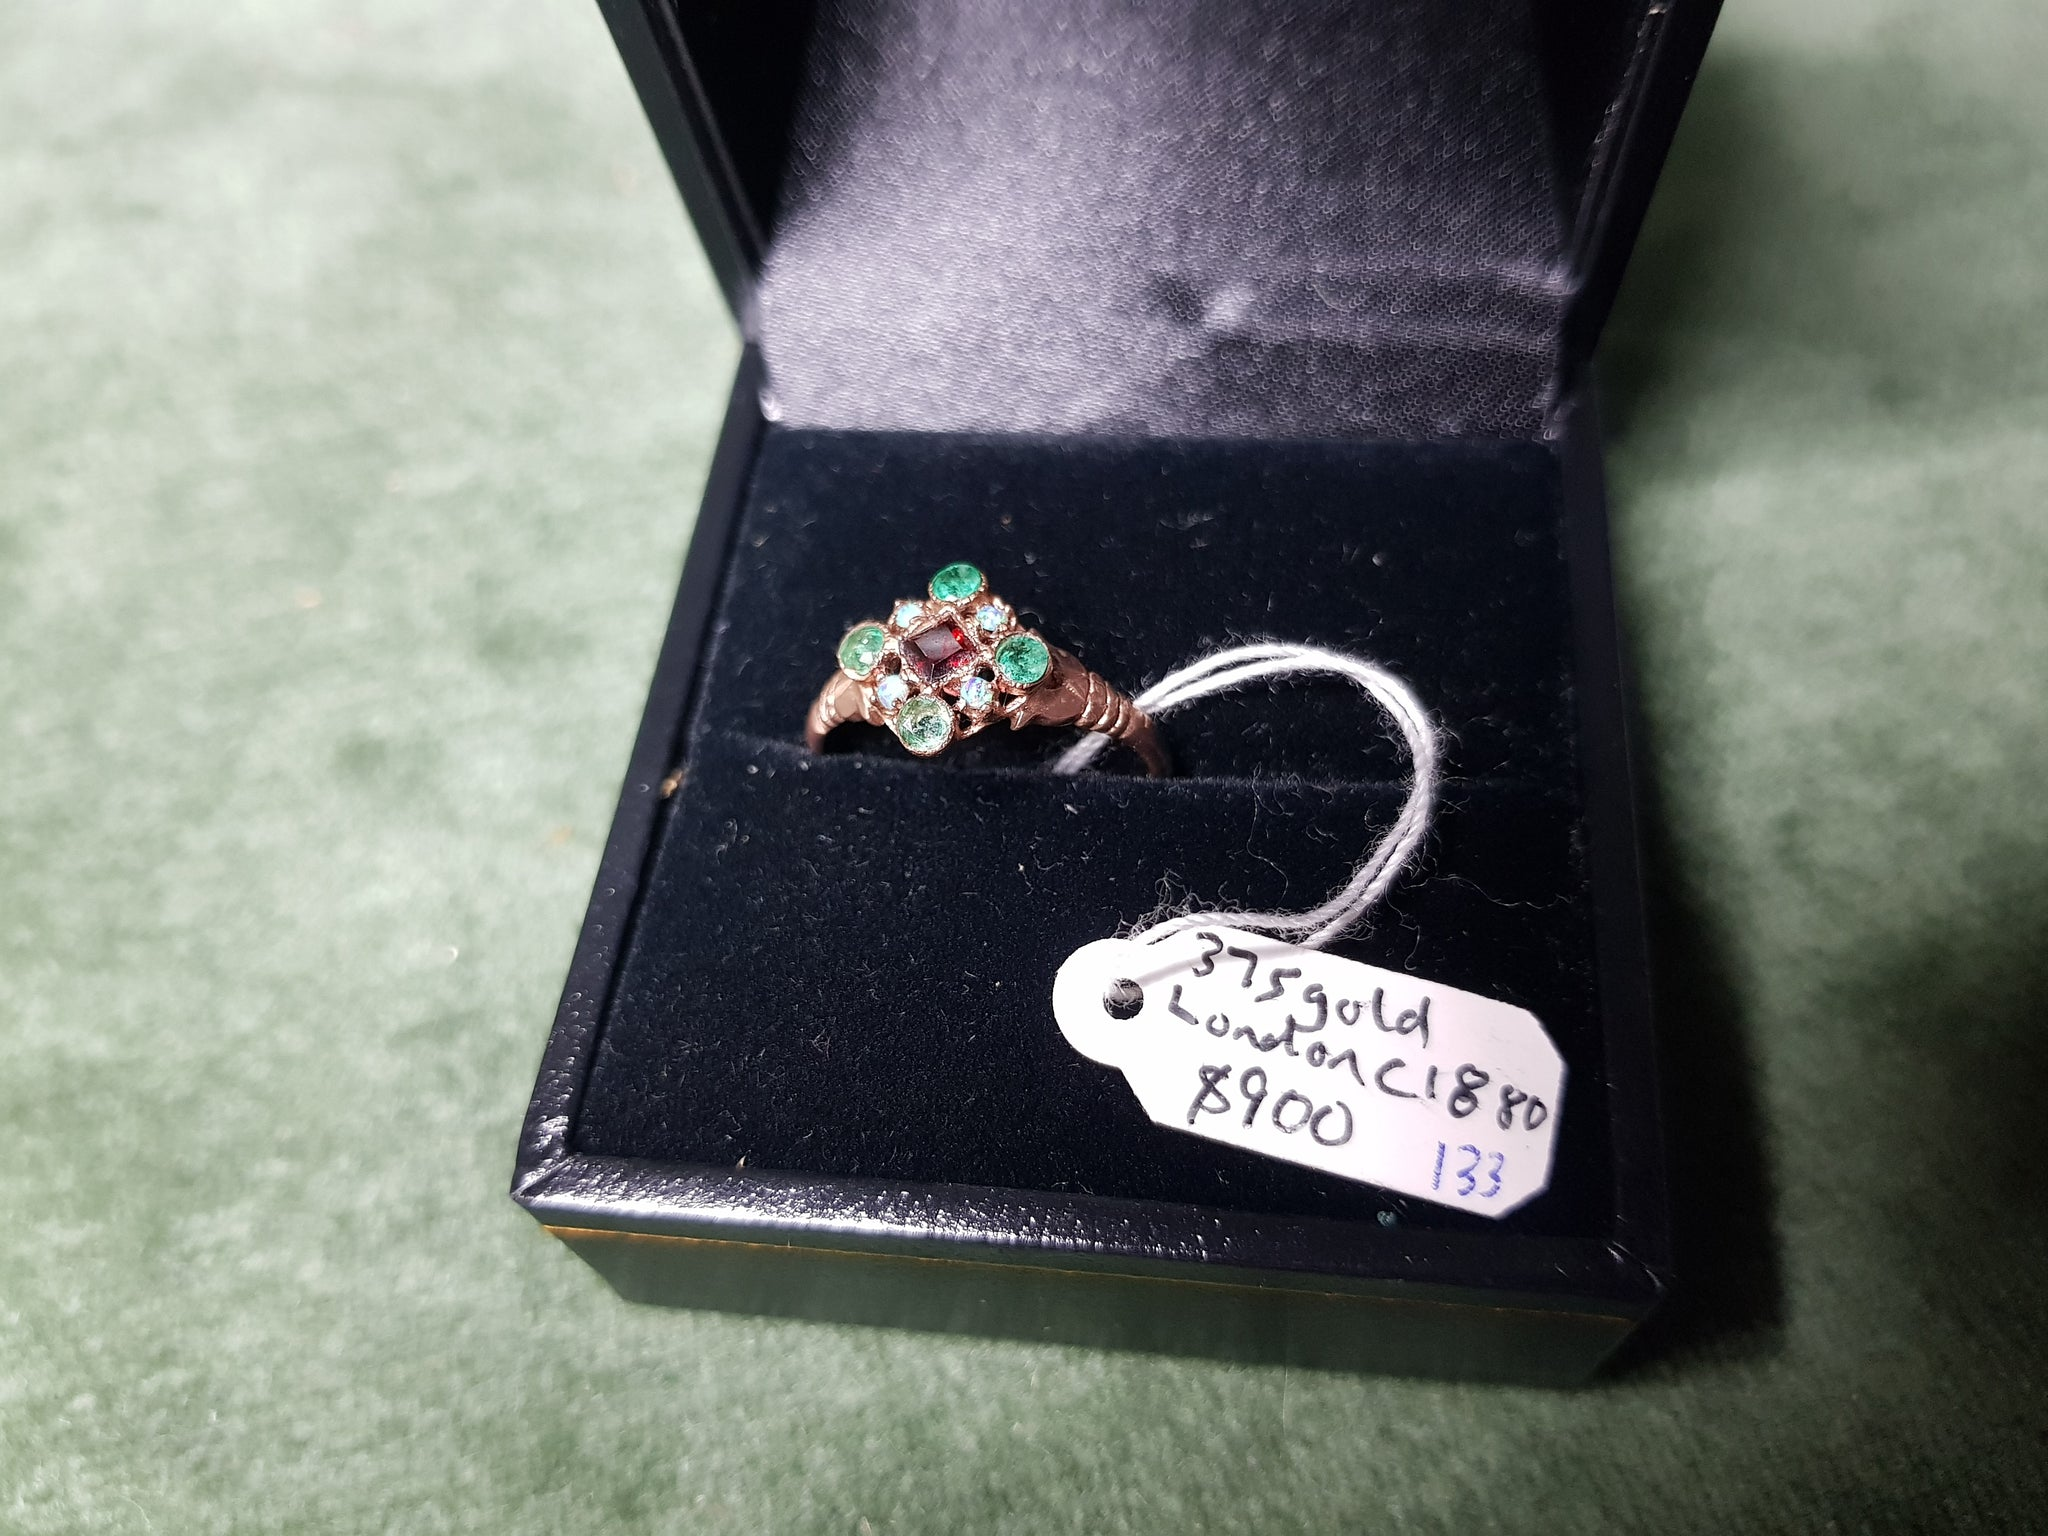 c1880 London 375 Gold, Emeralds, Garnets and Opals ring #133